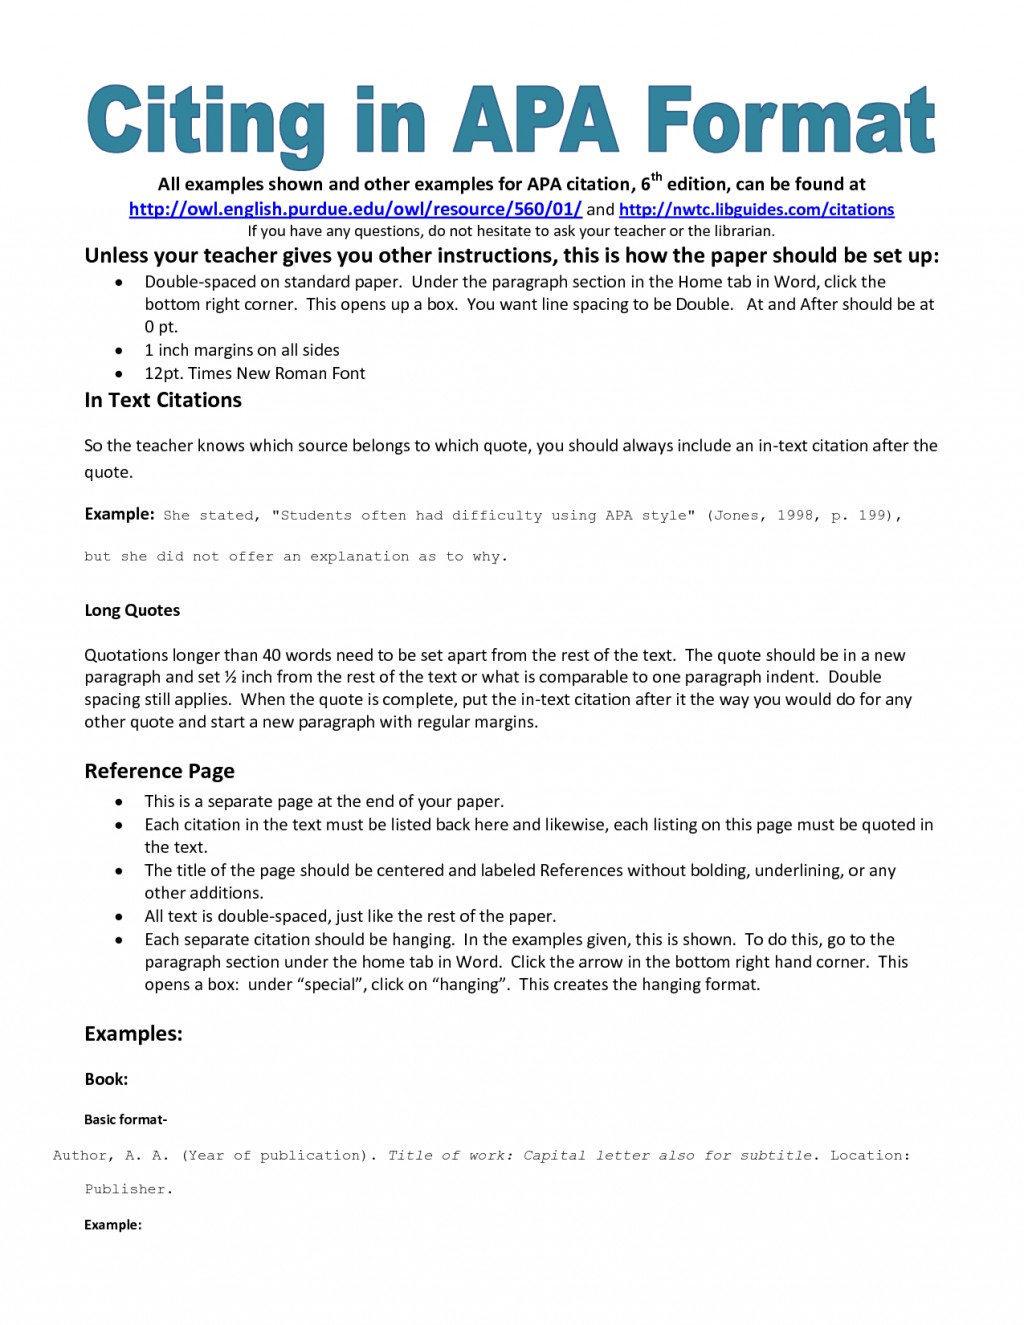 005 In Text Citation Research Awful Paper Sample How To Do Citations For A Mla Format Citing Large